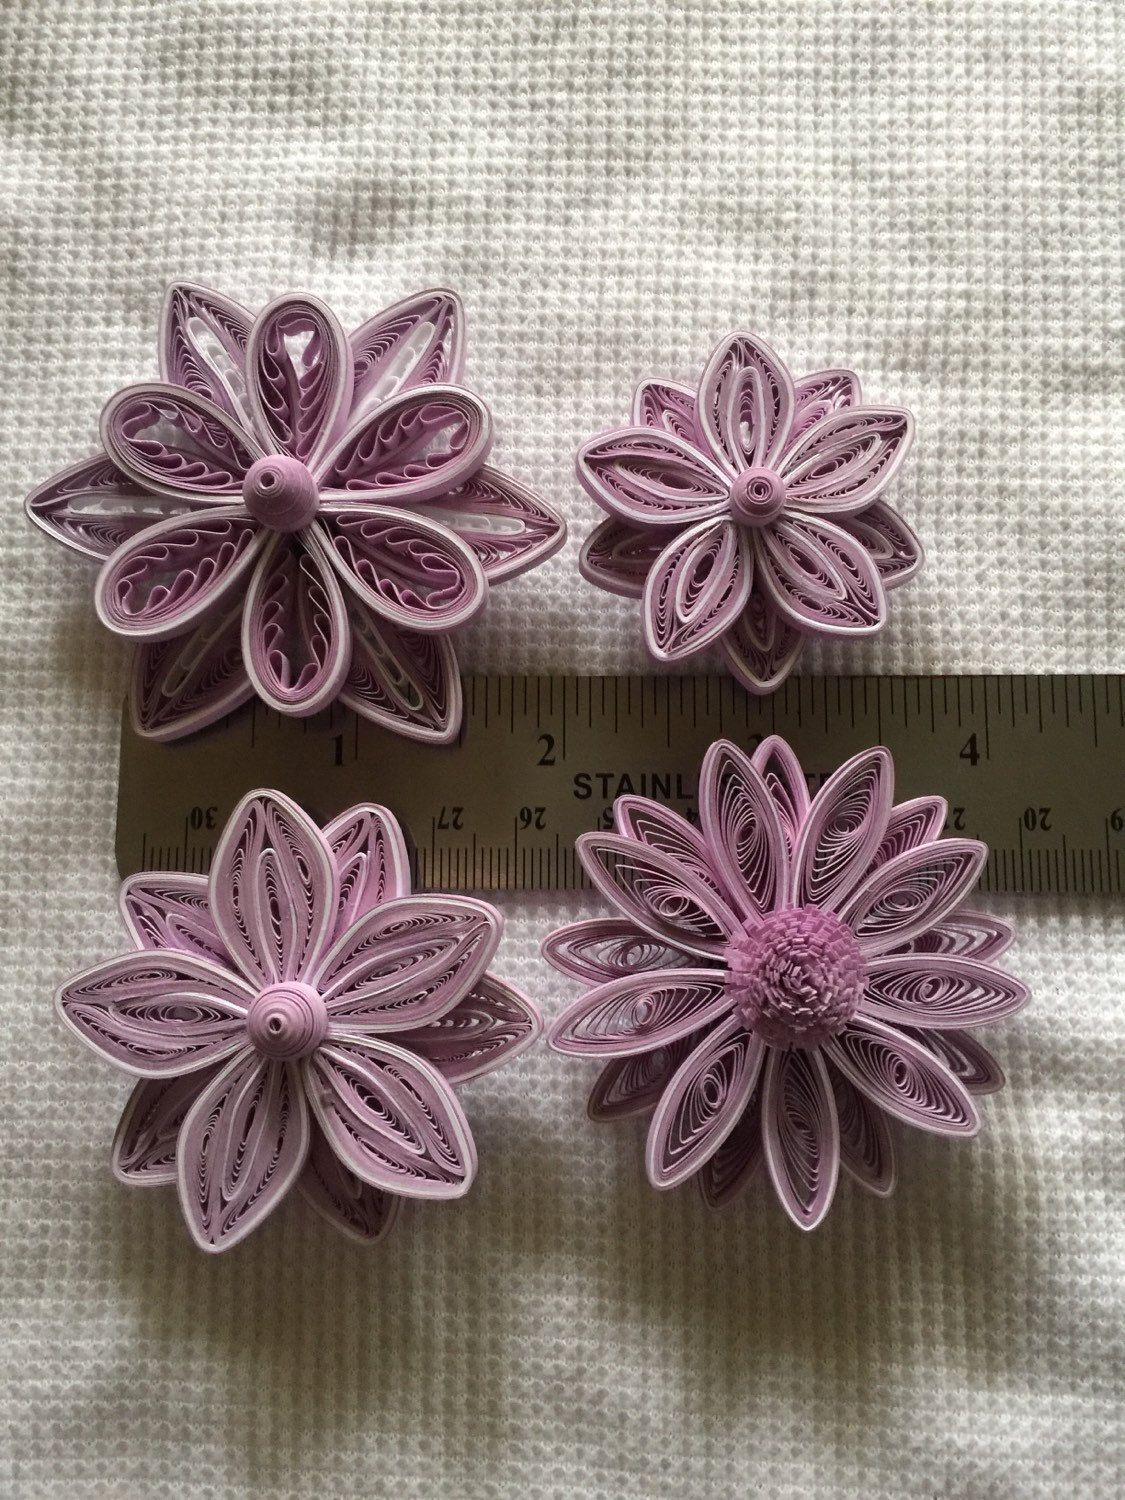 Paper quilled flowers by KraftKreationsByKim on Etsy